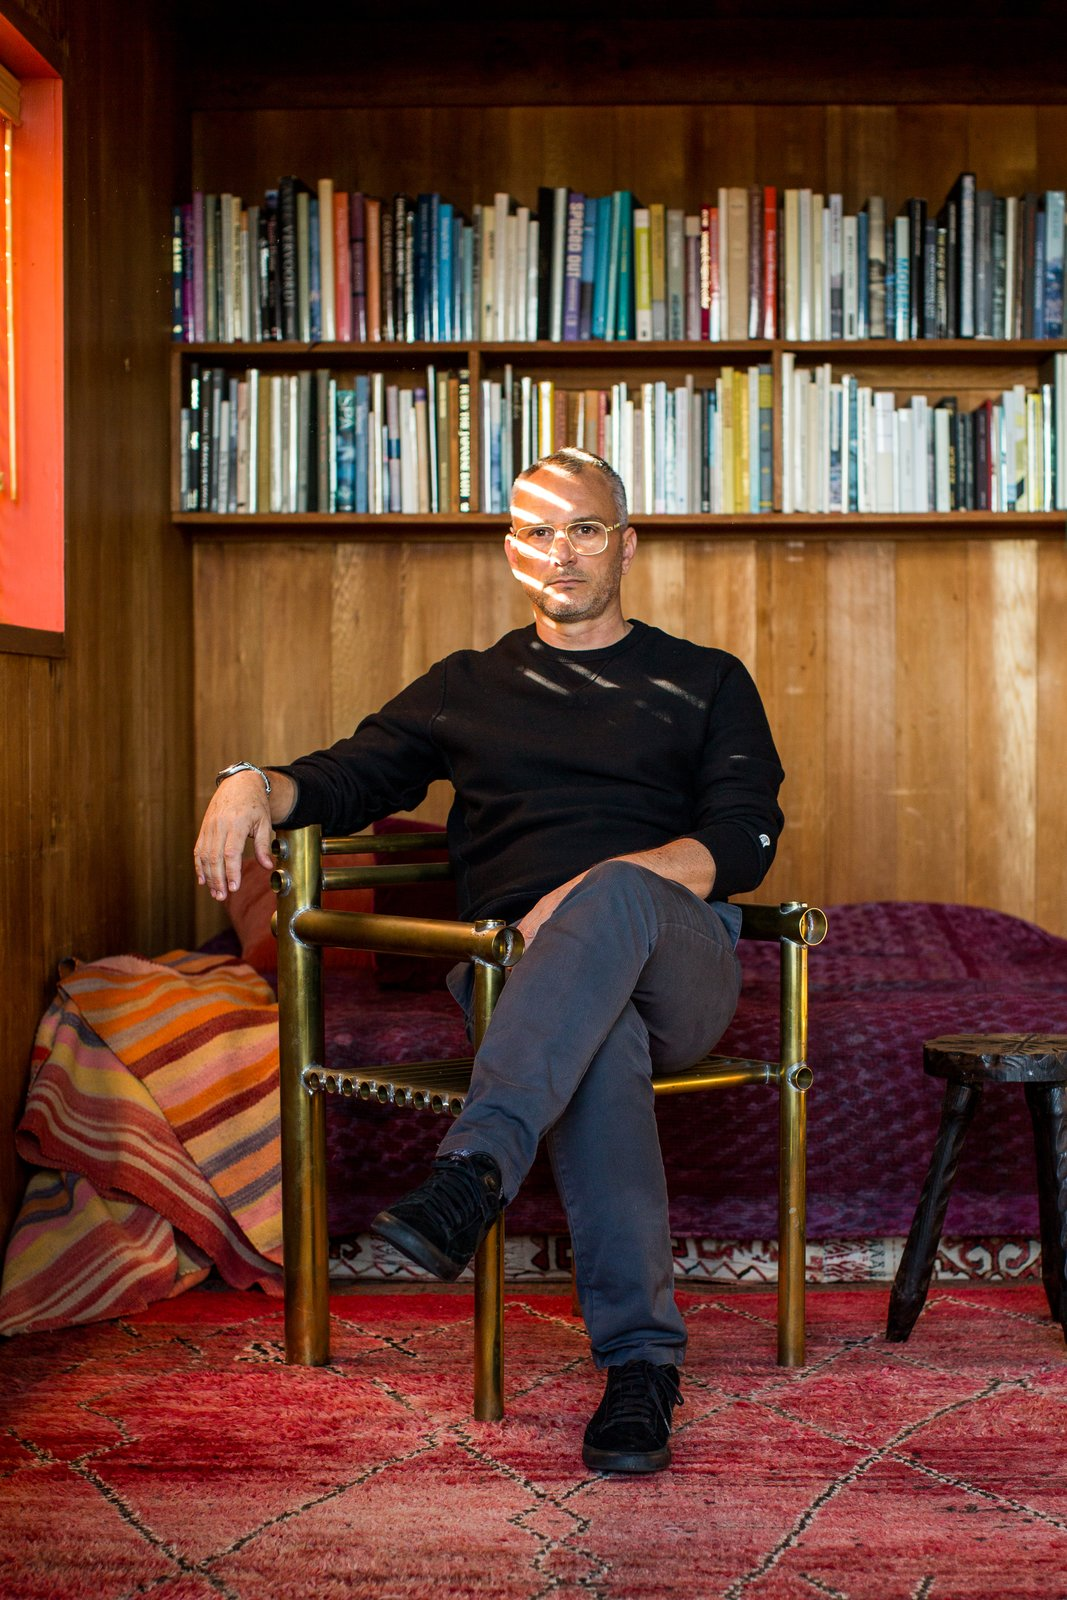 Charles de Lisle is shown here sitting in his Marin, California home. As a designer of furniture, lighting and objects, de Lisle mixes unexpected materials and mediums to create useful objects that are full of texture and character. Creatives of the Bay Area Series: Charles de Lisle - Photo 1 of 12